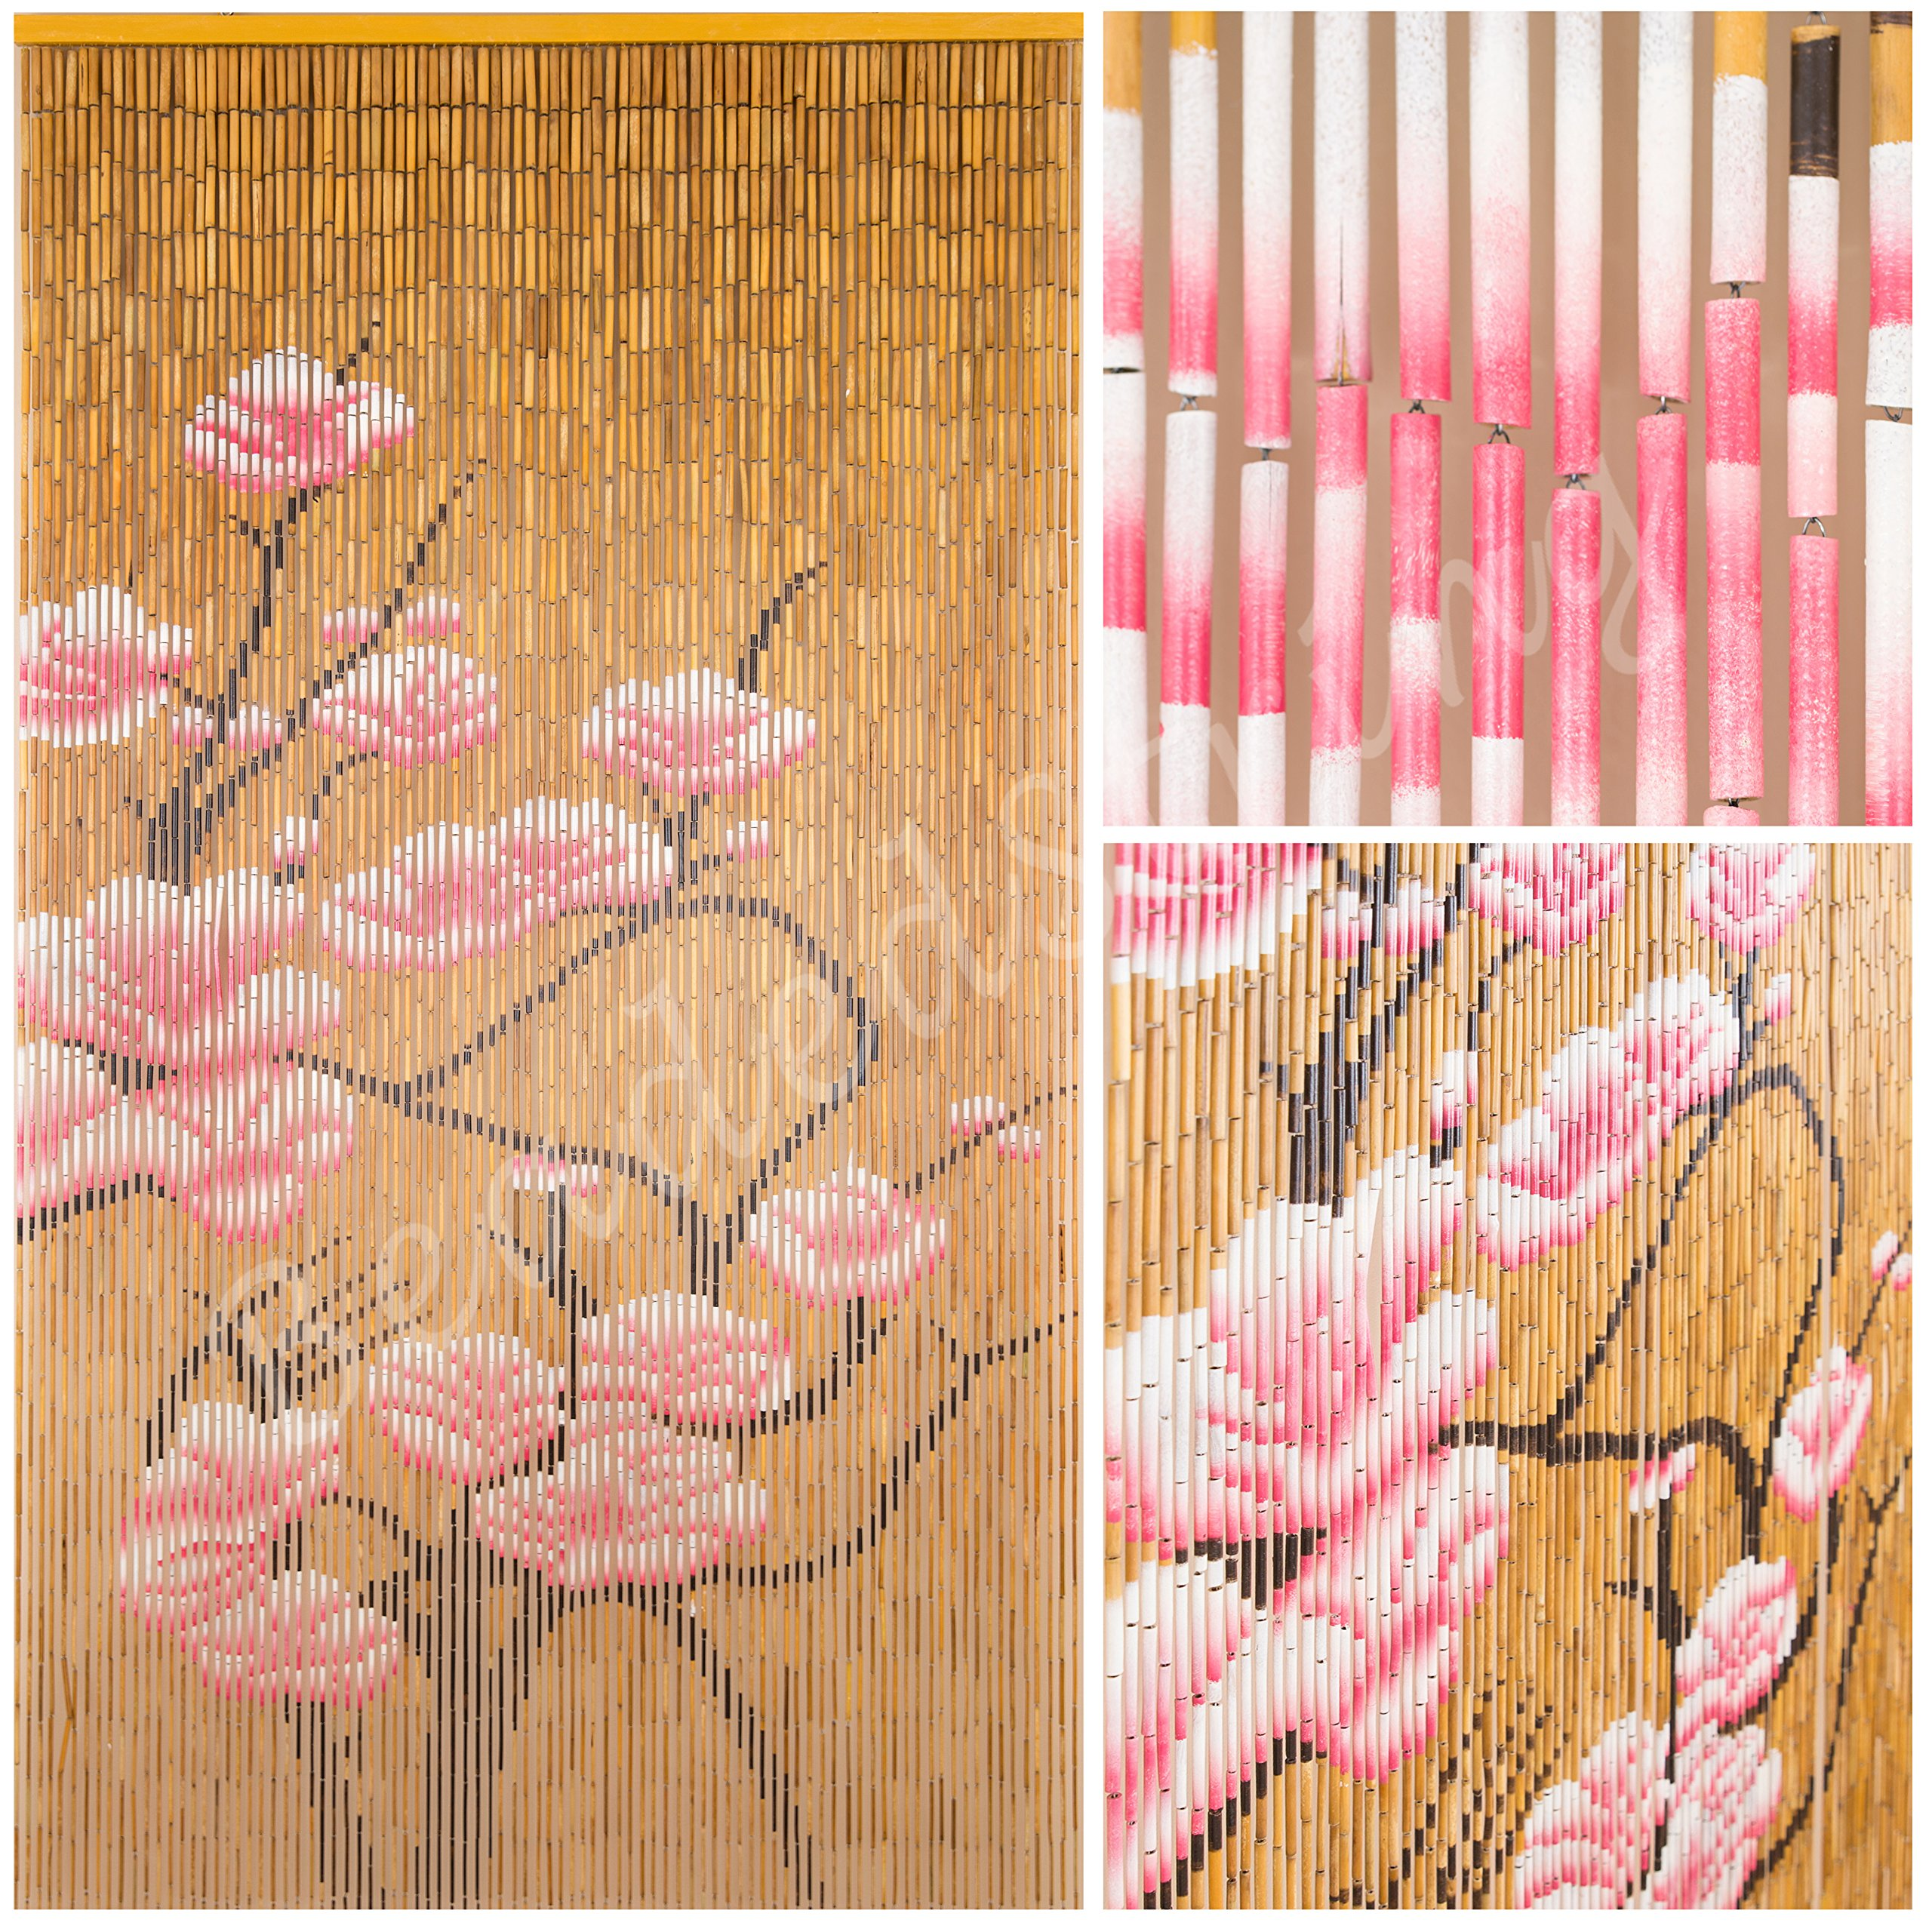 BeadedString Natural Bamboo Wood Beaded Curtain-90 Starnds-80 High-Boho Door Beads-Bohemian Doorway Curtain-35.5'' Wx80 H-Blossom by BeadedString (Image #2)